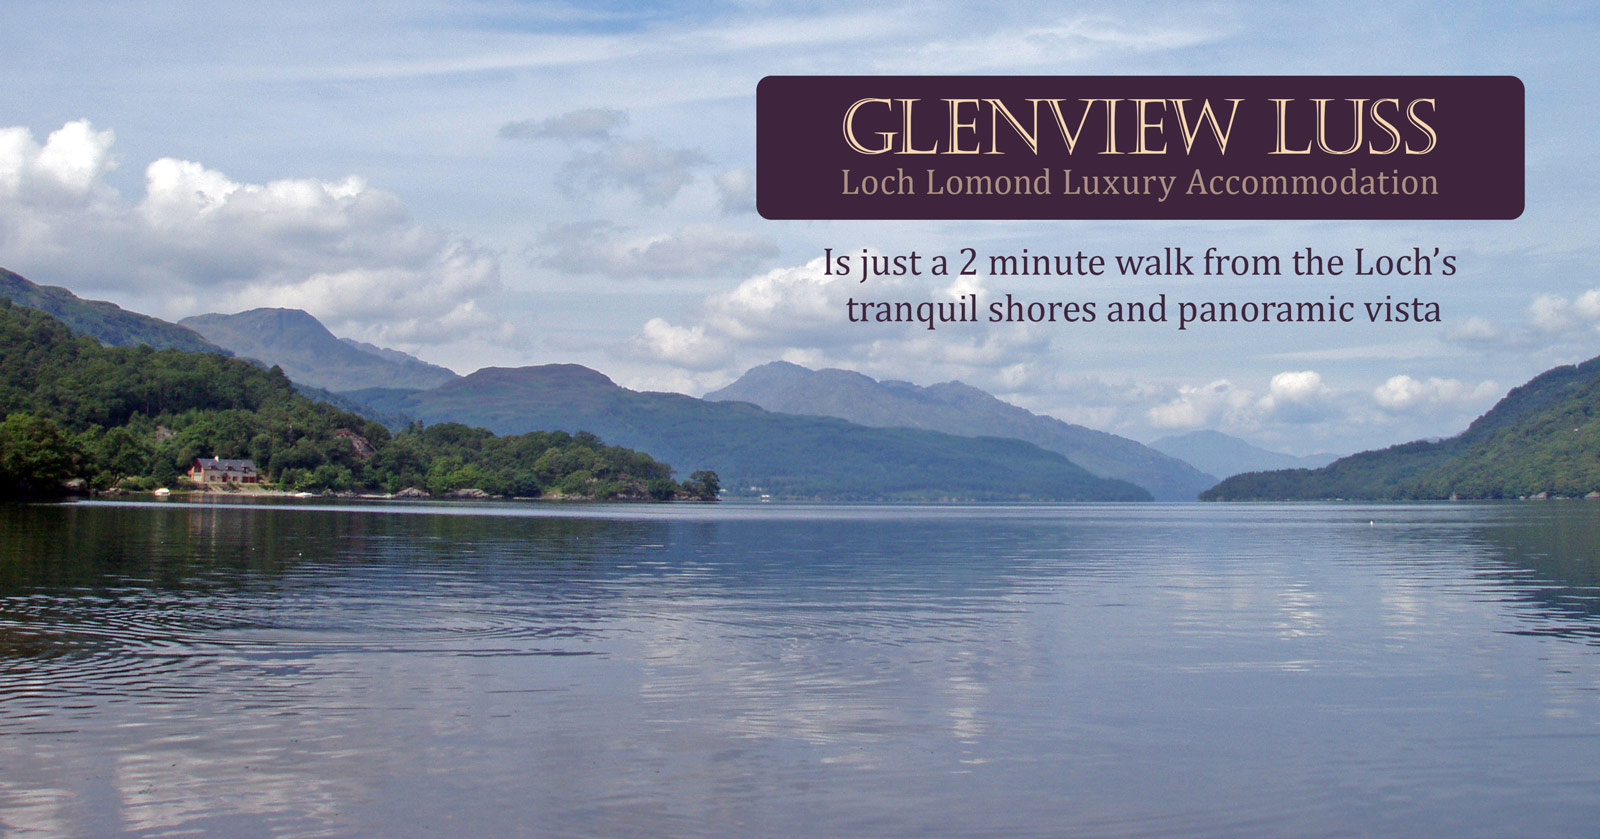 Is just a 2 minute walk from the Loch's tranquil shores and panoramic vista